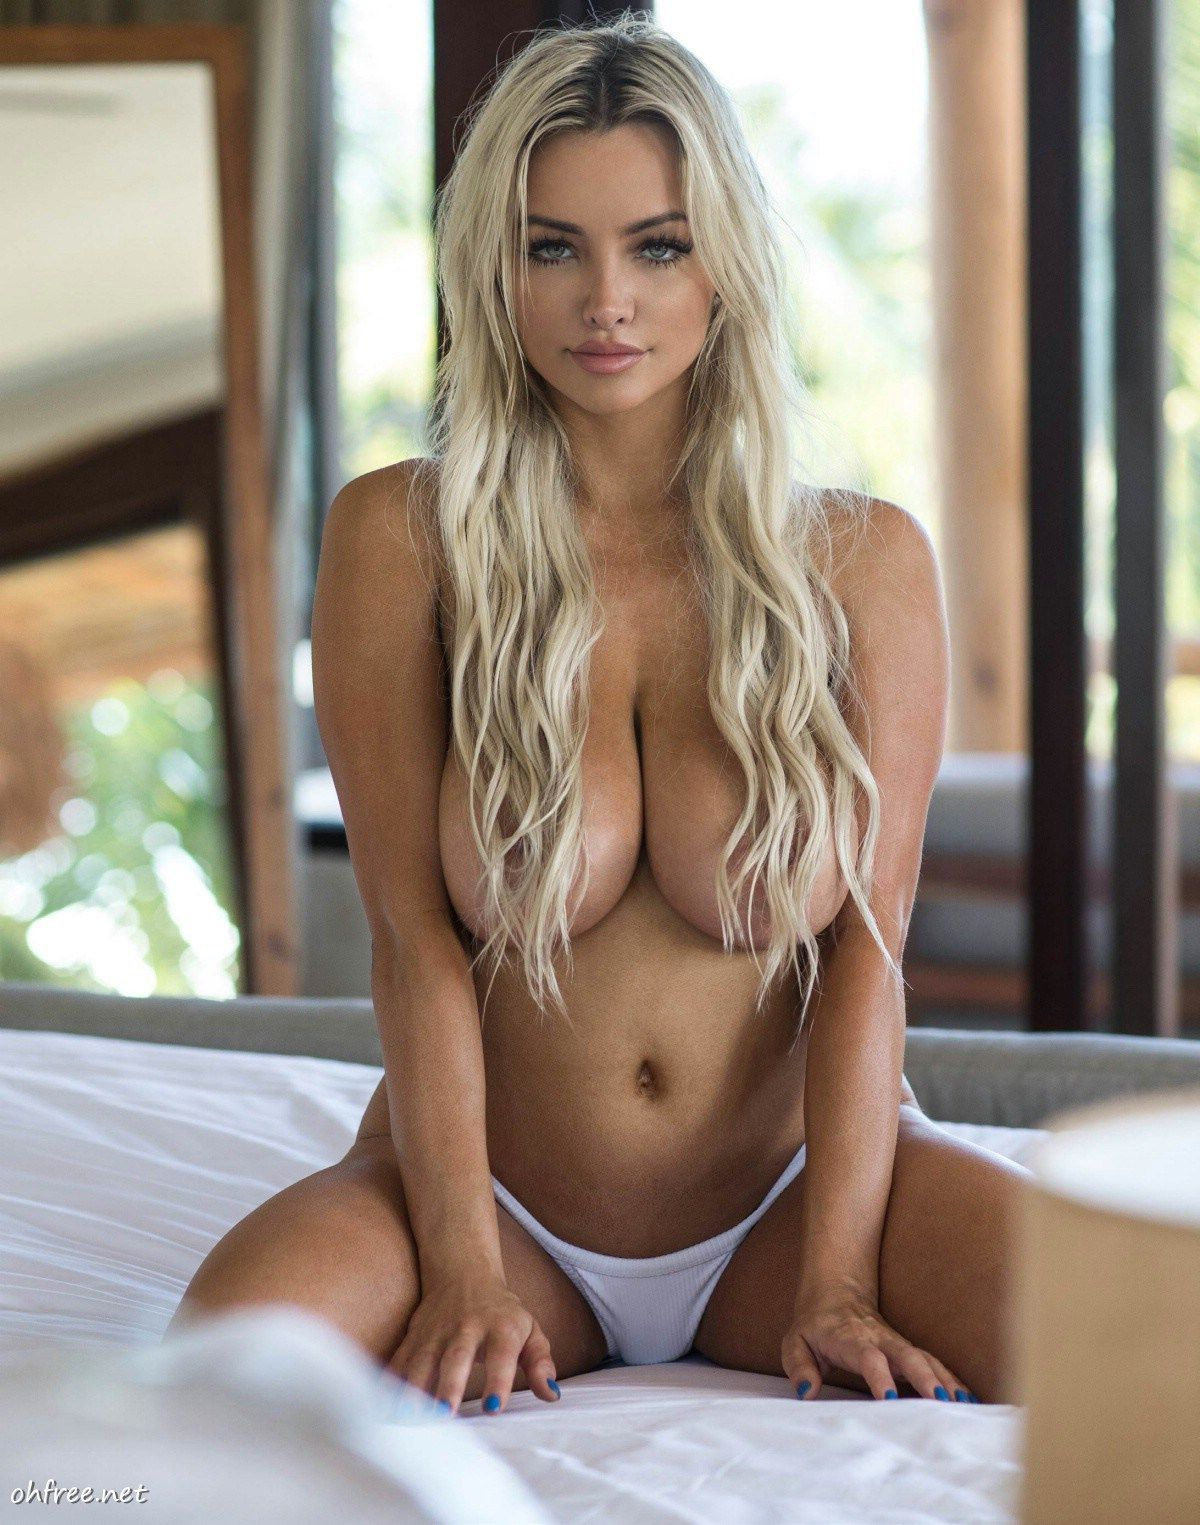 Lindsey Pelas Naked Pics The Fappening Leaked Photos